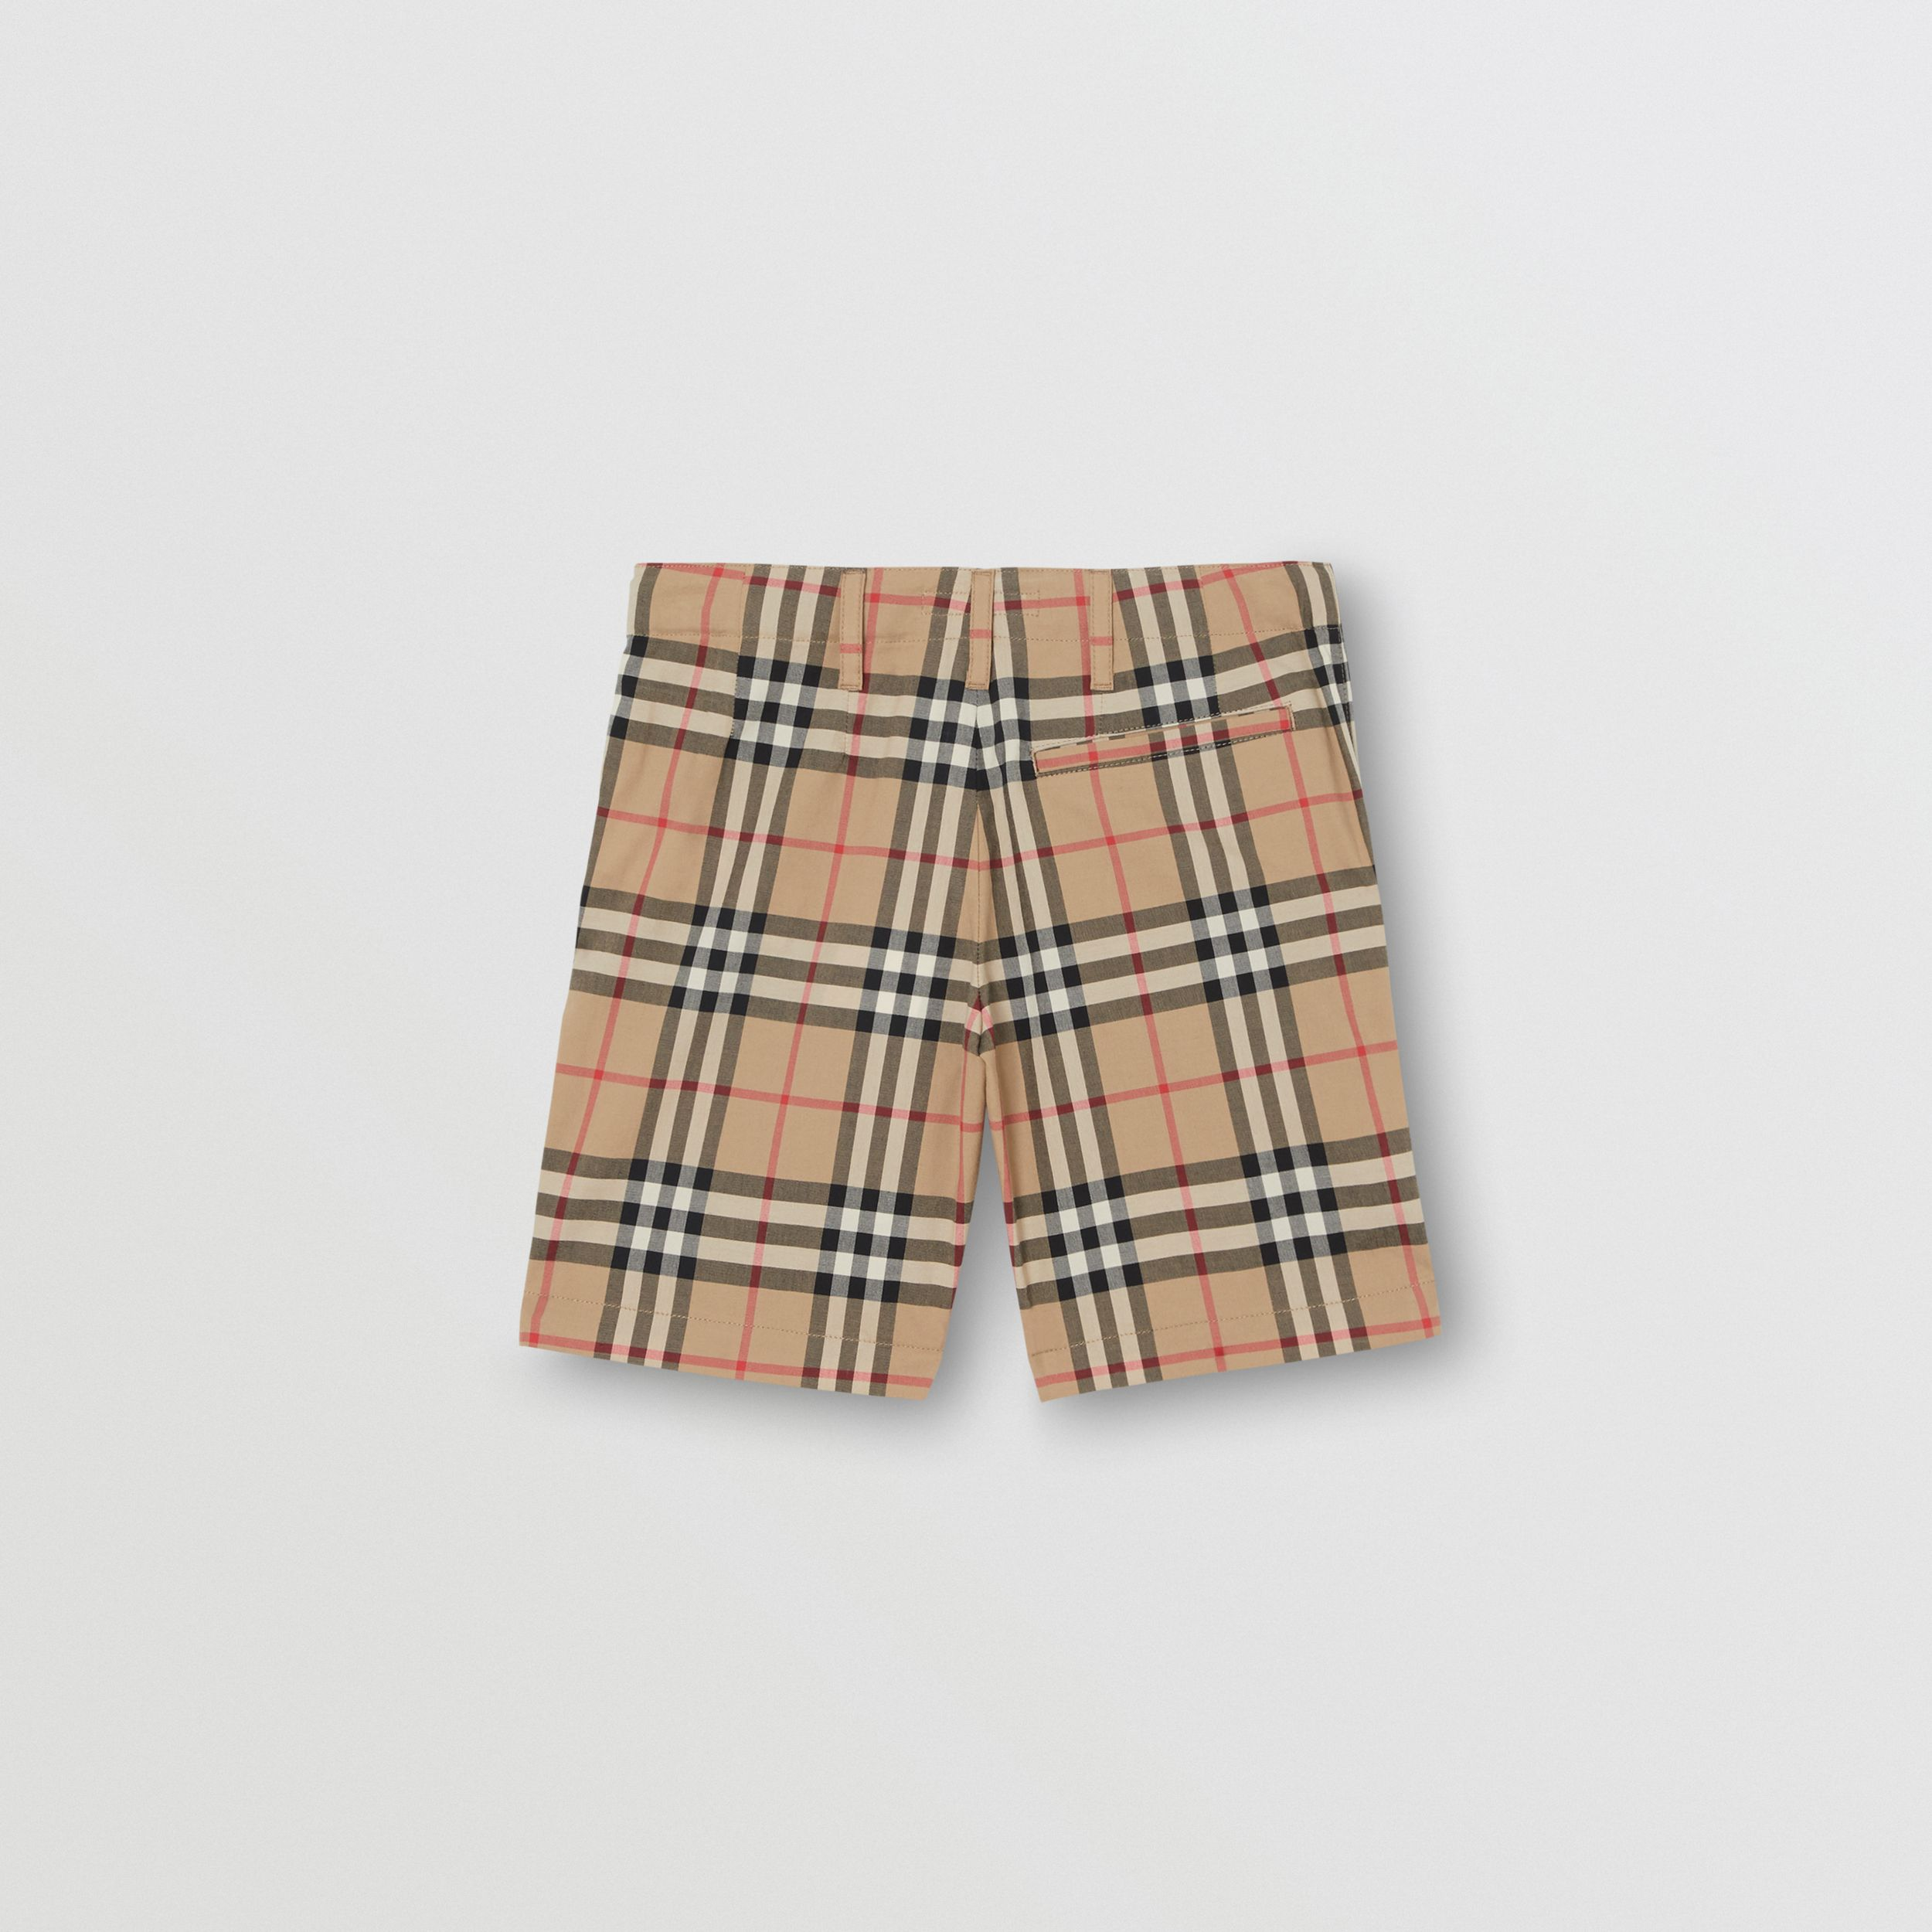 Vintage Check Cotton Tailored Shorts in Archive Beige | Burberry United Kingdom - 4